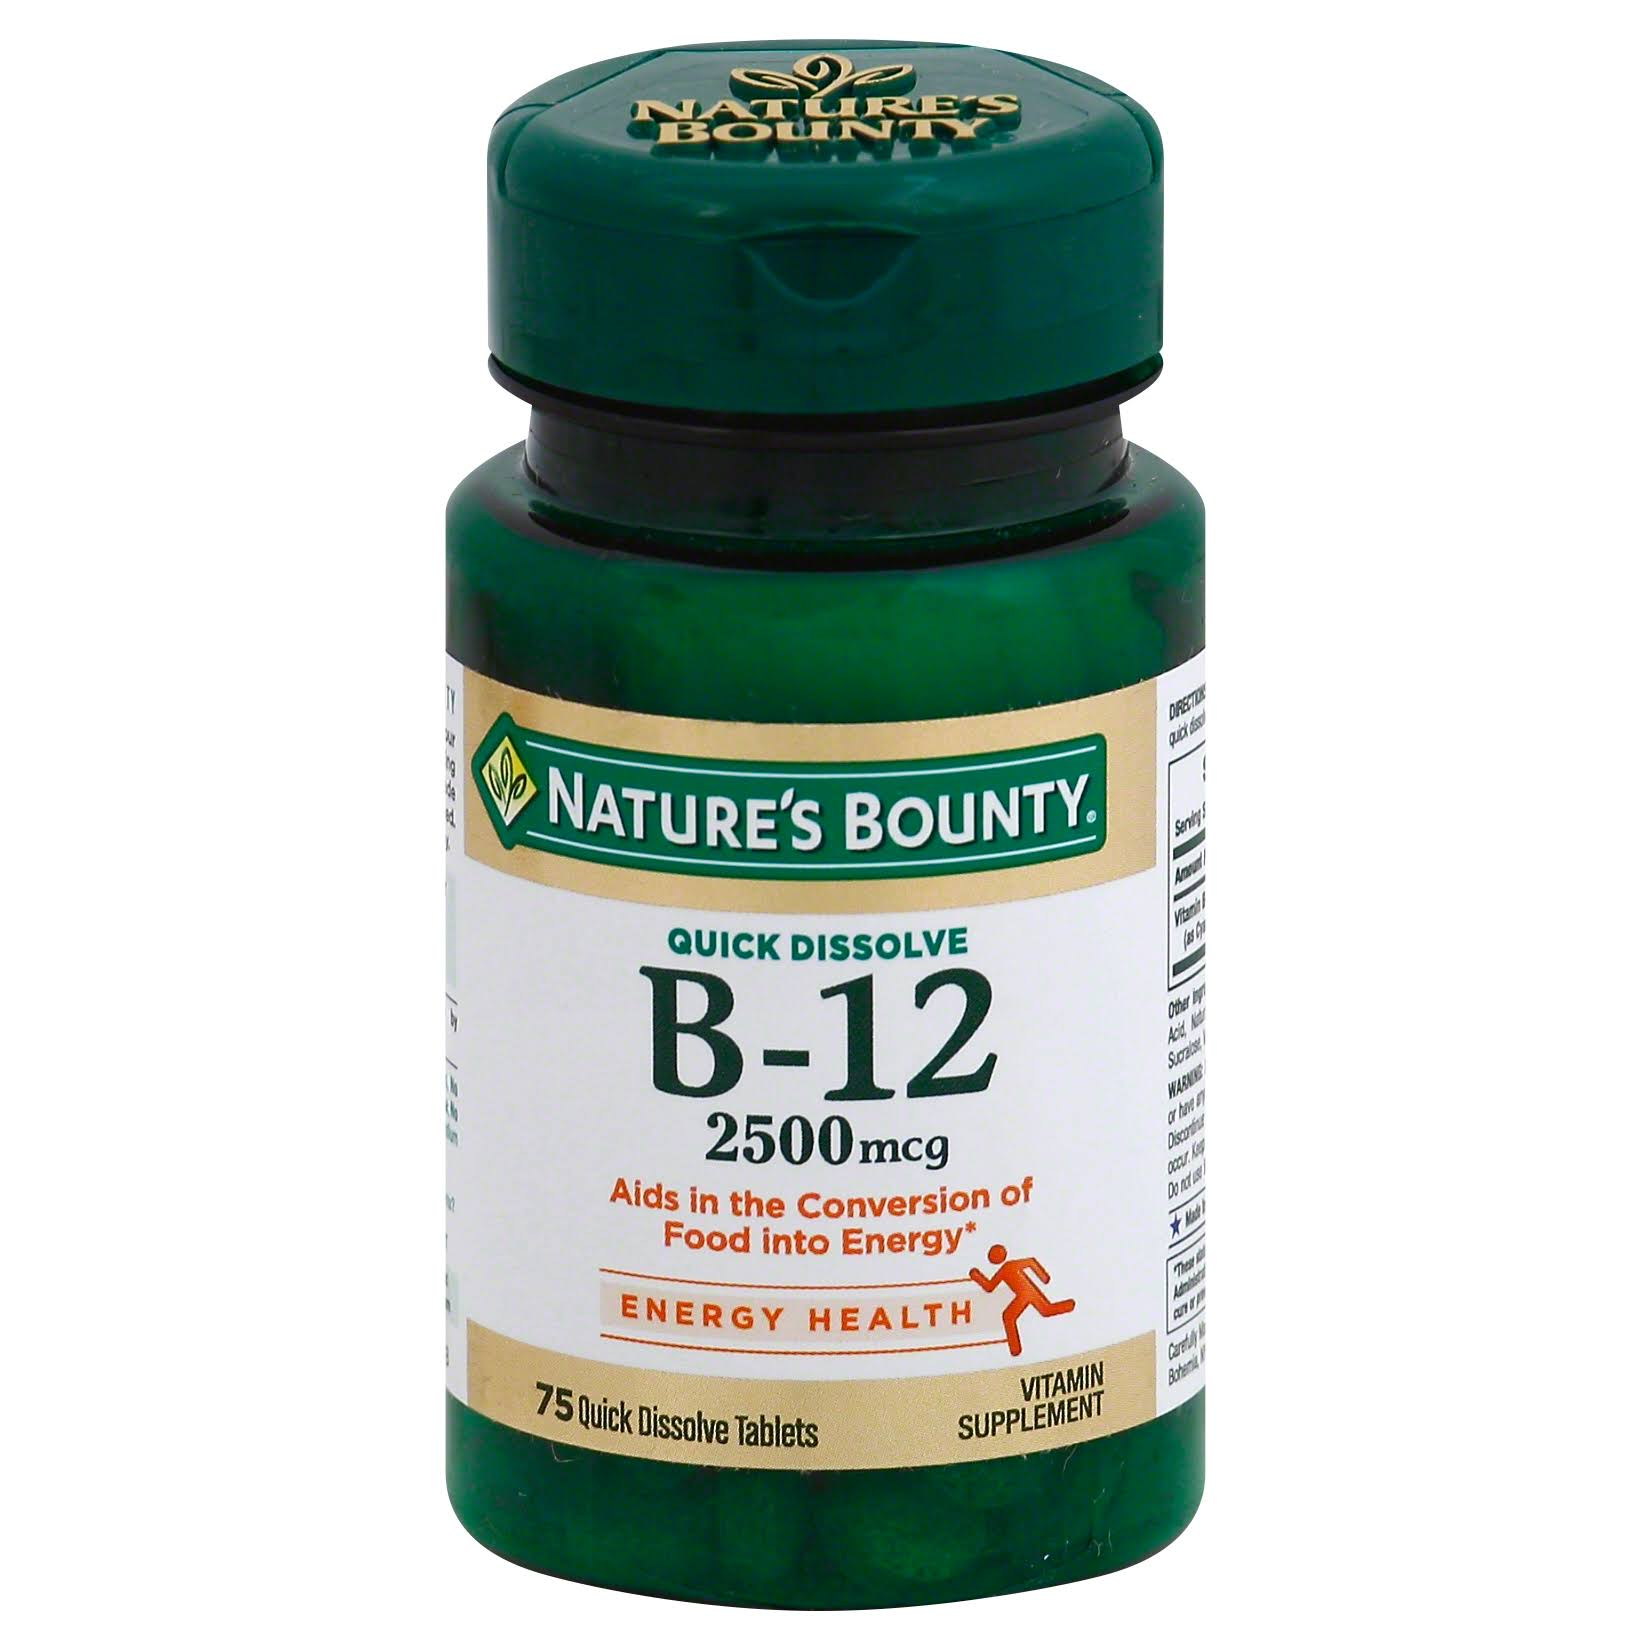 Nature's Bounty B-12 Supplement - Natural Cherry Flavor, 75 Quick Dissolve Tablets